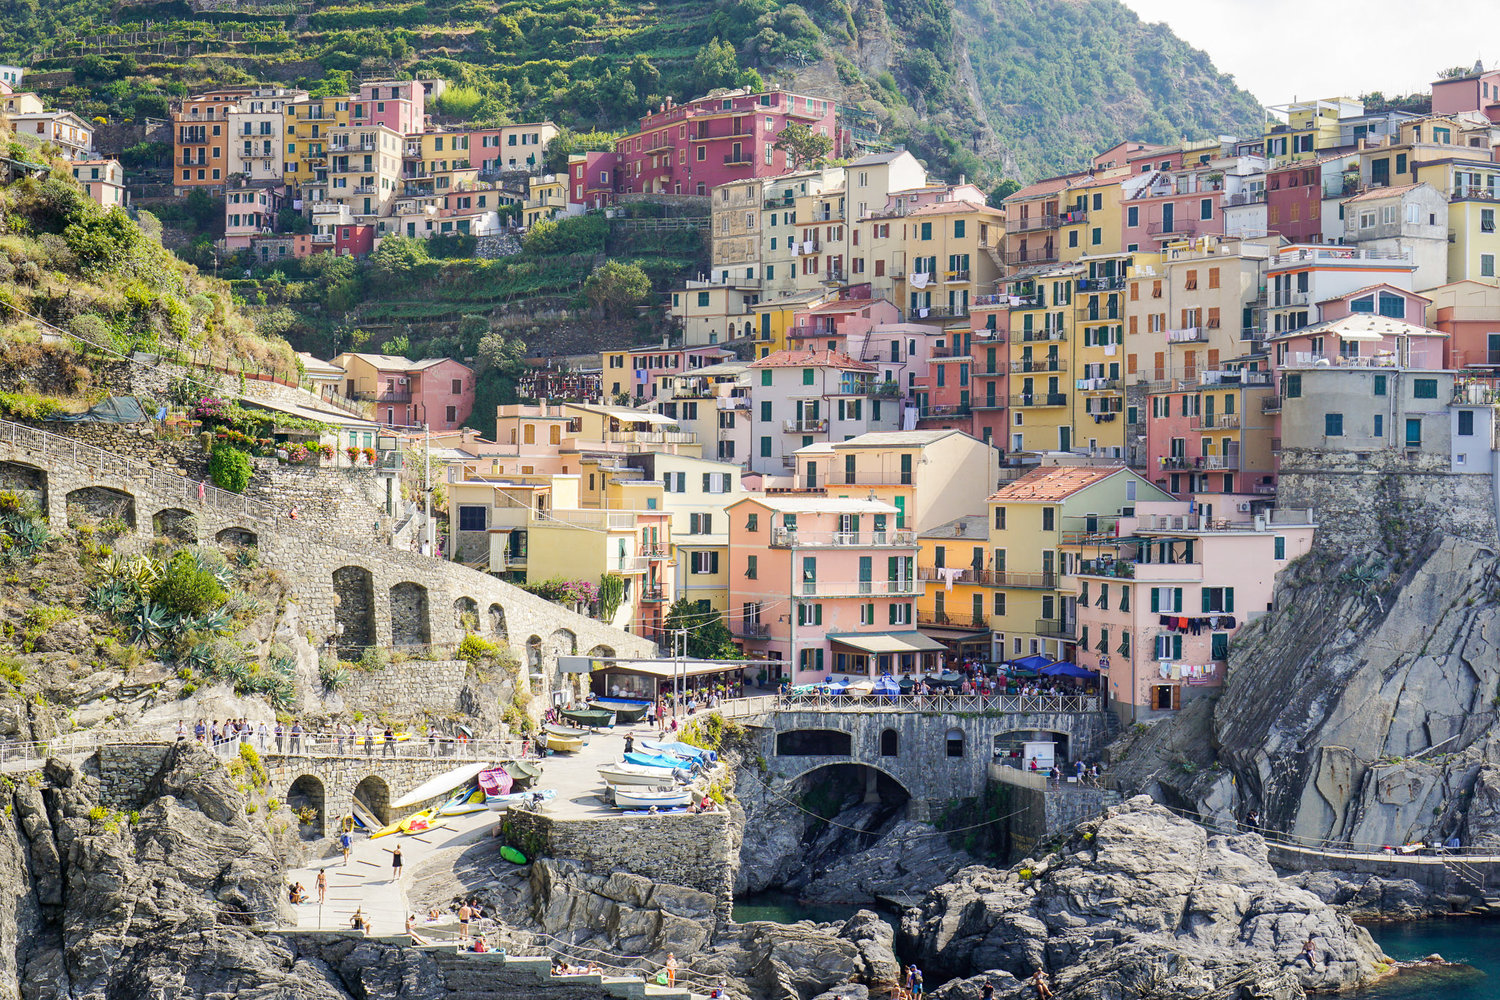 Cinque Terre: Hiking and Relaxing on the Italian Riviera